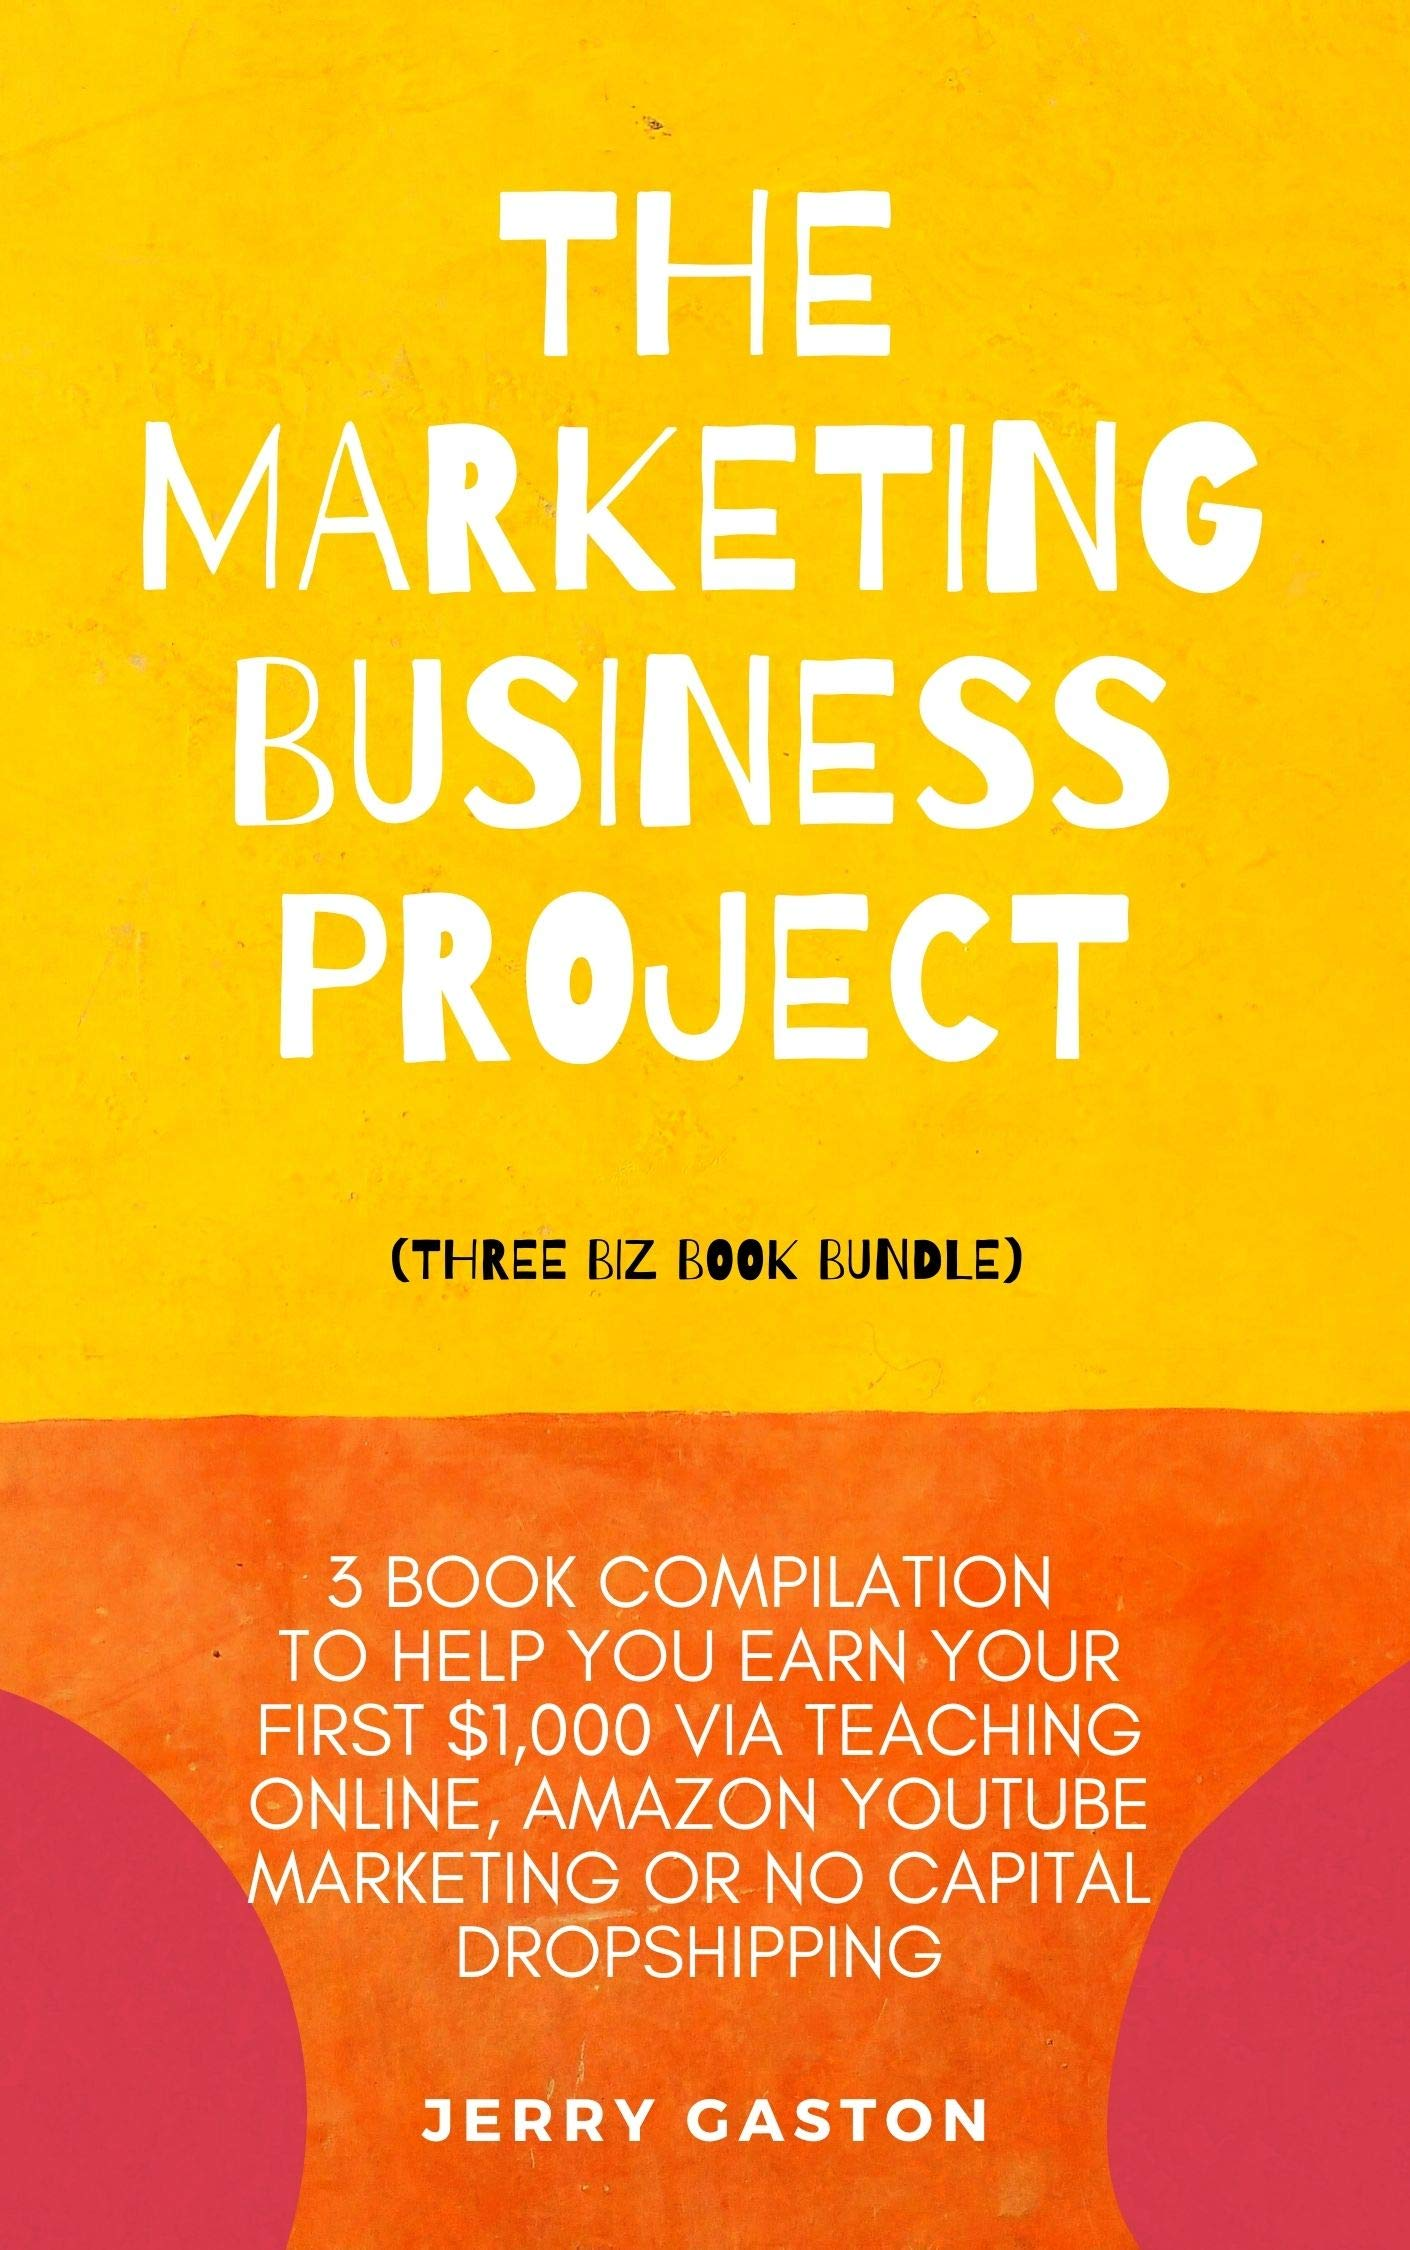 The Marketing Business Project (Three Biz Book Bundle): 3 Book Compilation to Help You Earn Your First $1,000 via Teaching Online, Amazon YouTube Marketing or No Capital Dropshipping